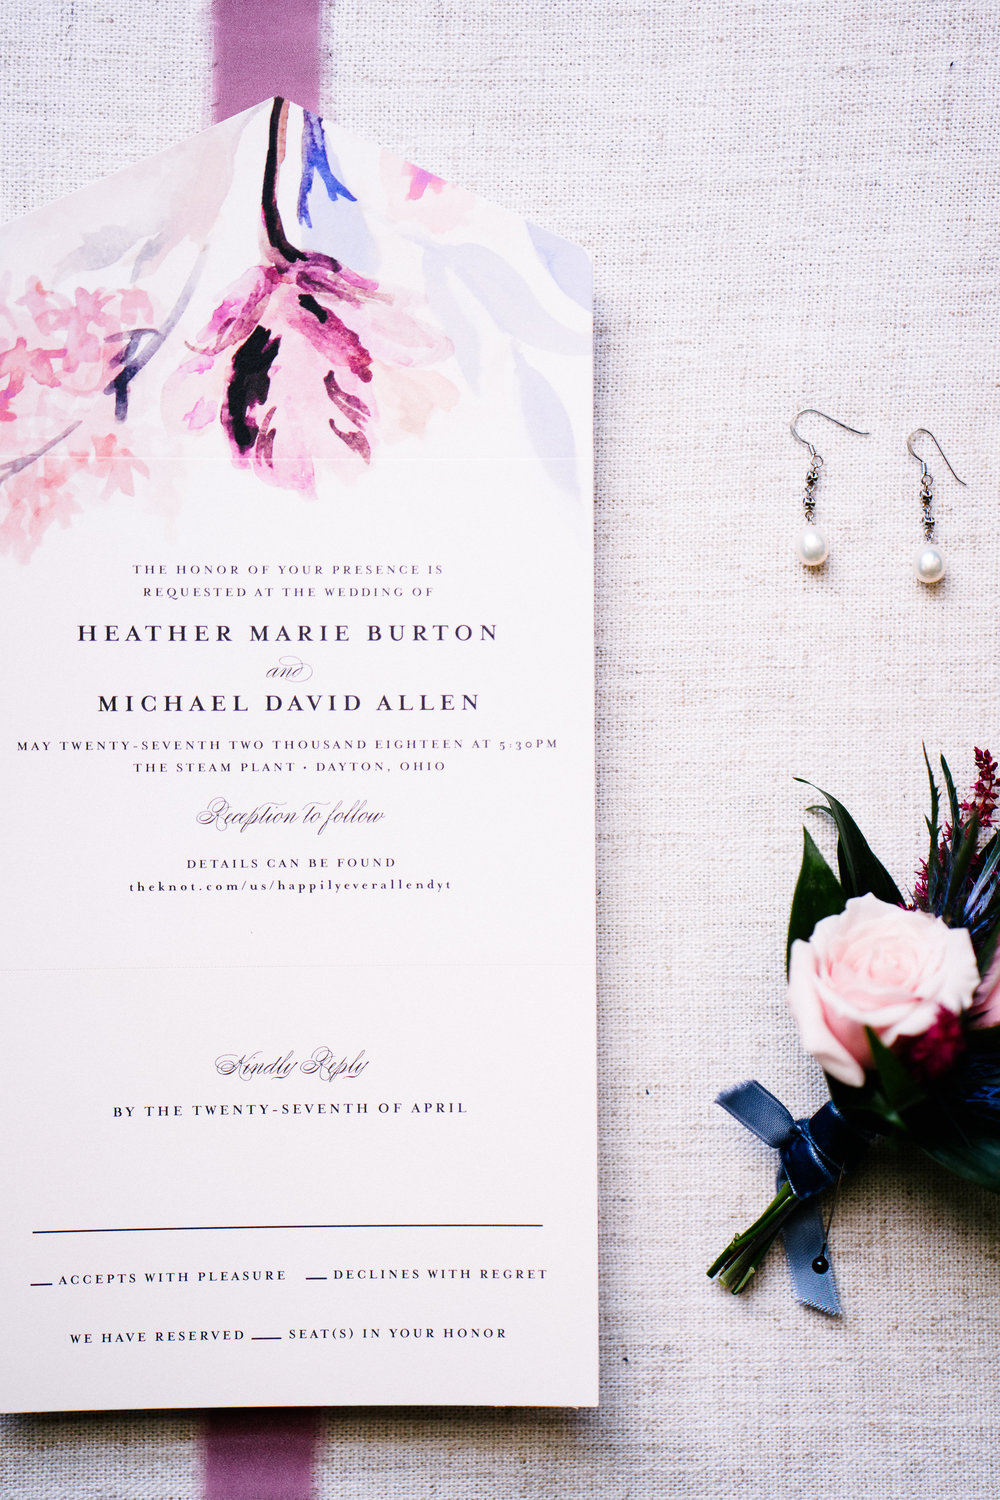 Heather and Michael-Steam Plant Wedding - Samantha Joy Events - Invitation.jpg